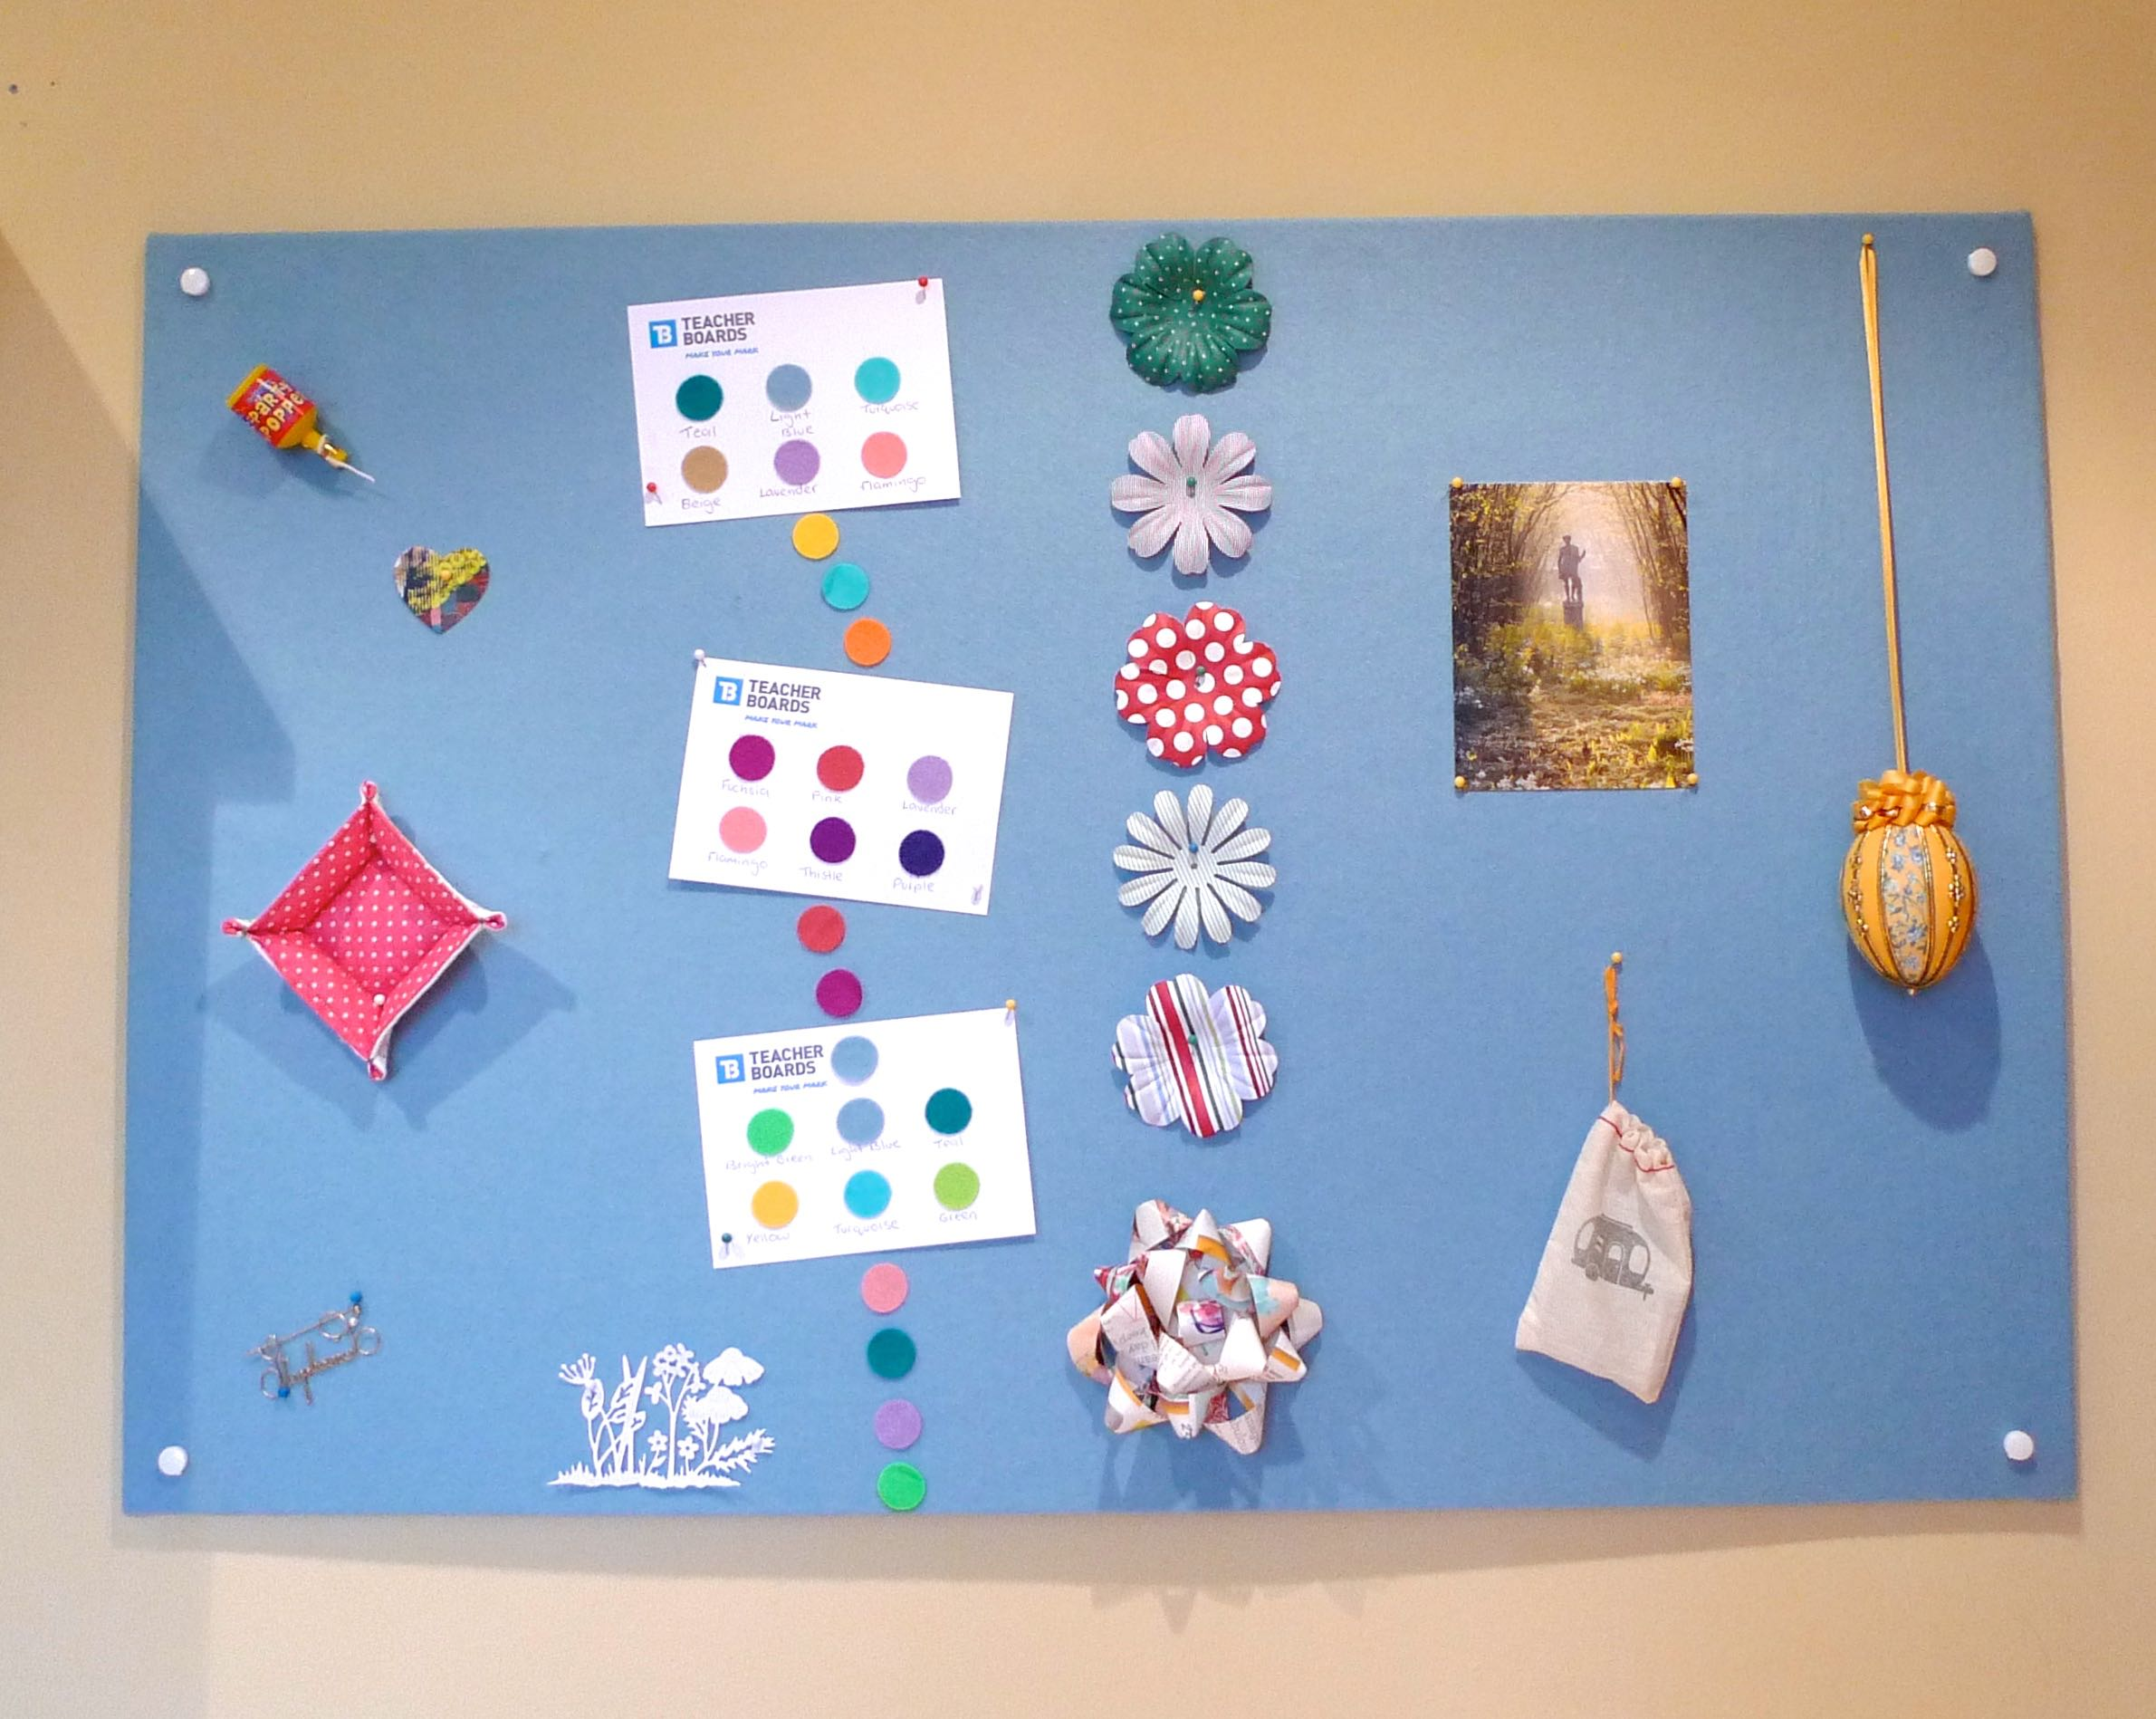 DECORATED RAINBOW BOARD